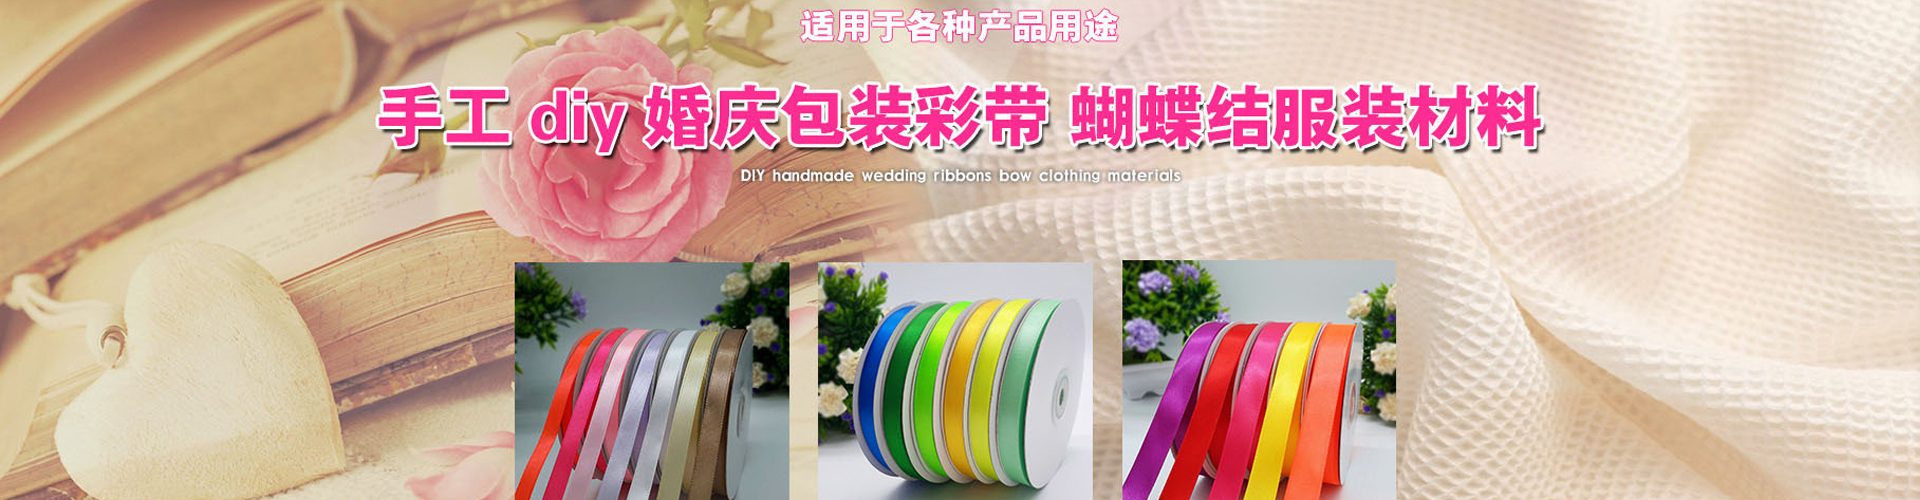 Jiaozuo Xiangsheng Ribbon Co., Ltd.